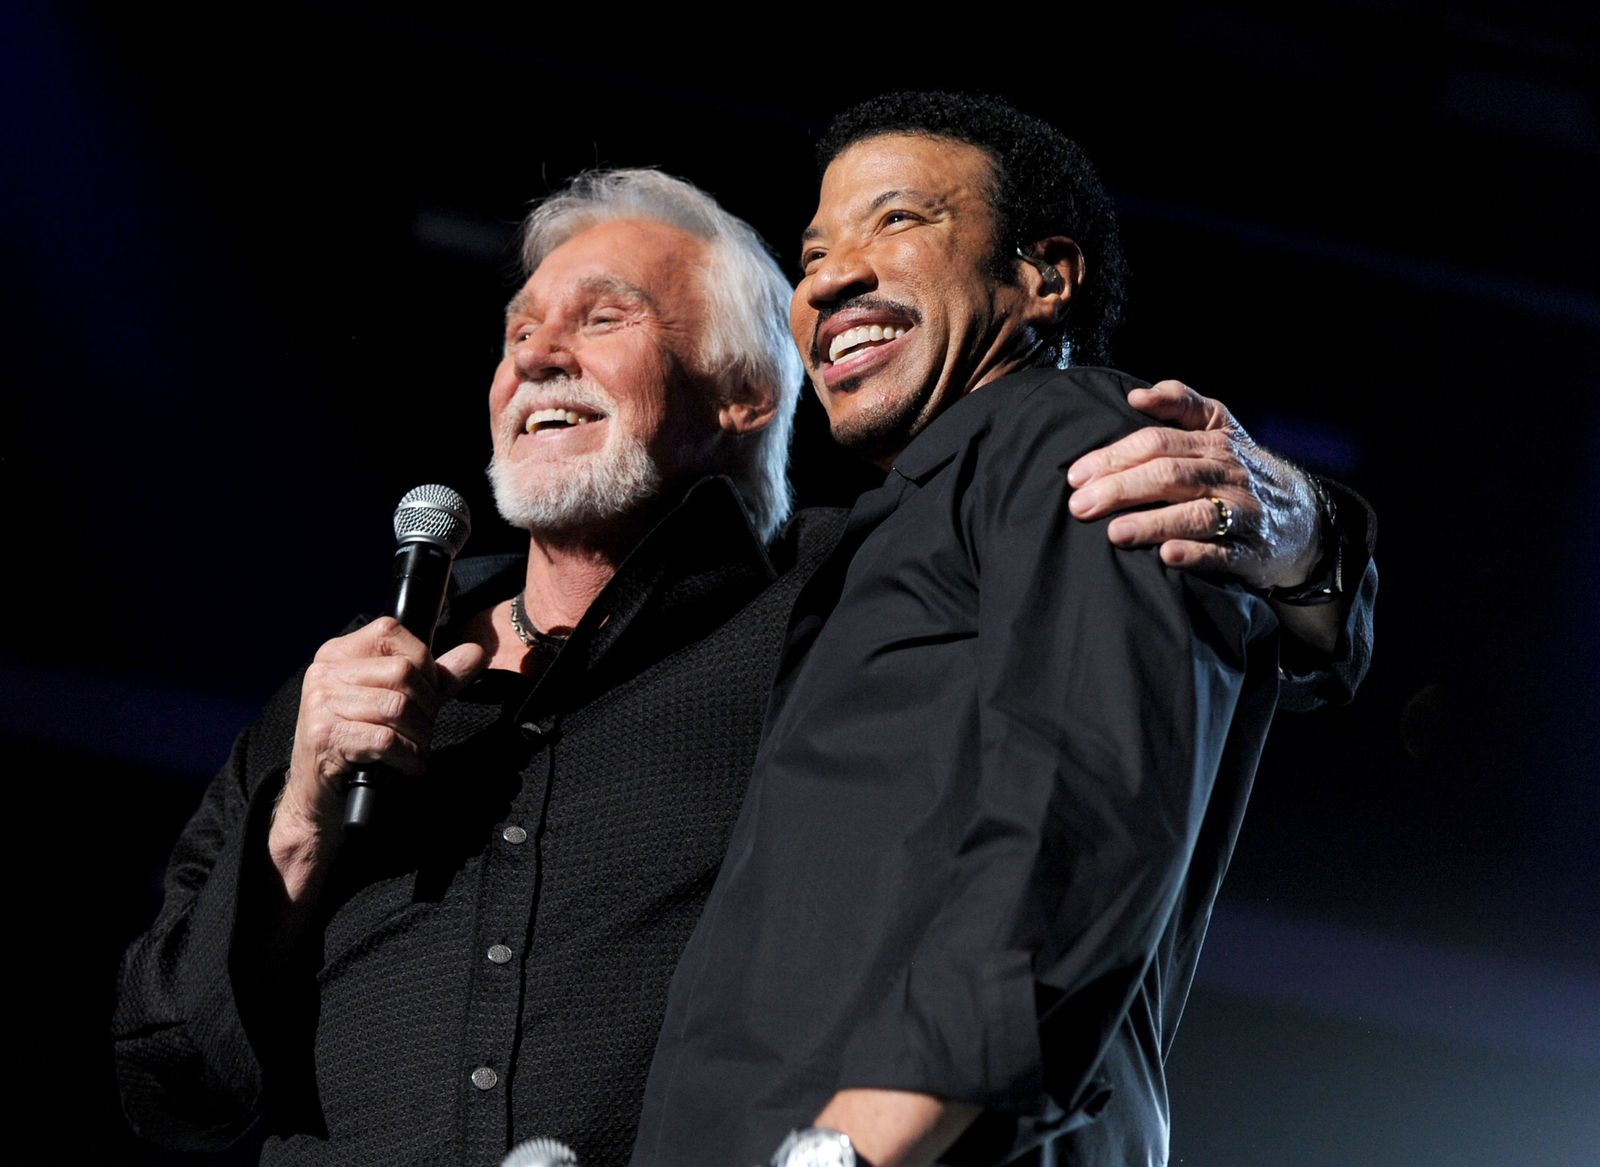 ACM Presents: Lionel Richie And Friends - In Concert - Roaming Show